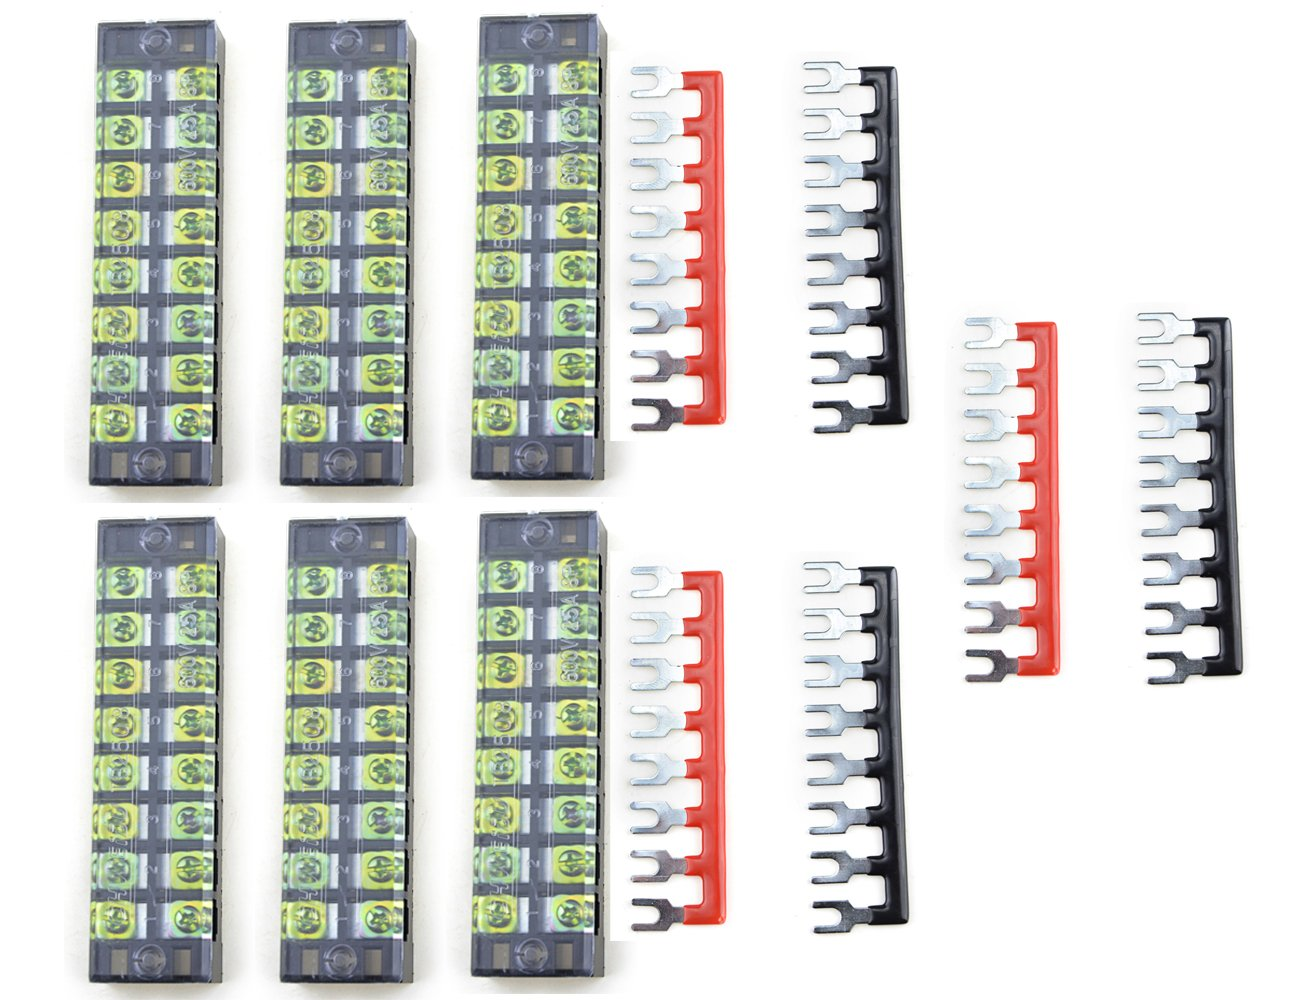 XLX 12pcs 6 Set 600V 25A 8 Positions Double Row Screw Terminal Strip and 400V 25A 8 Positions Red Black Pre Insulated Terminal Barrier Strip